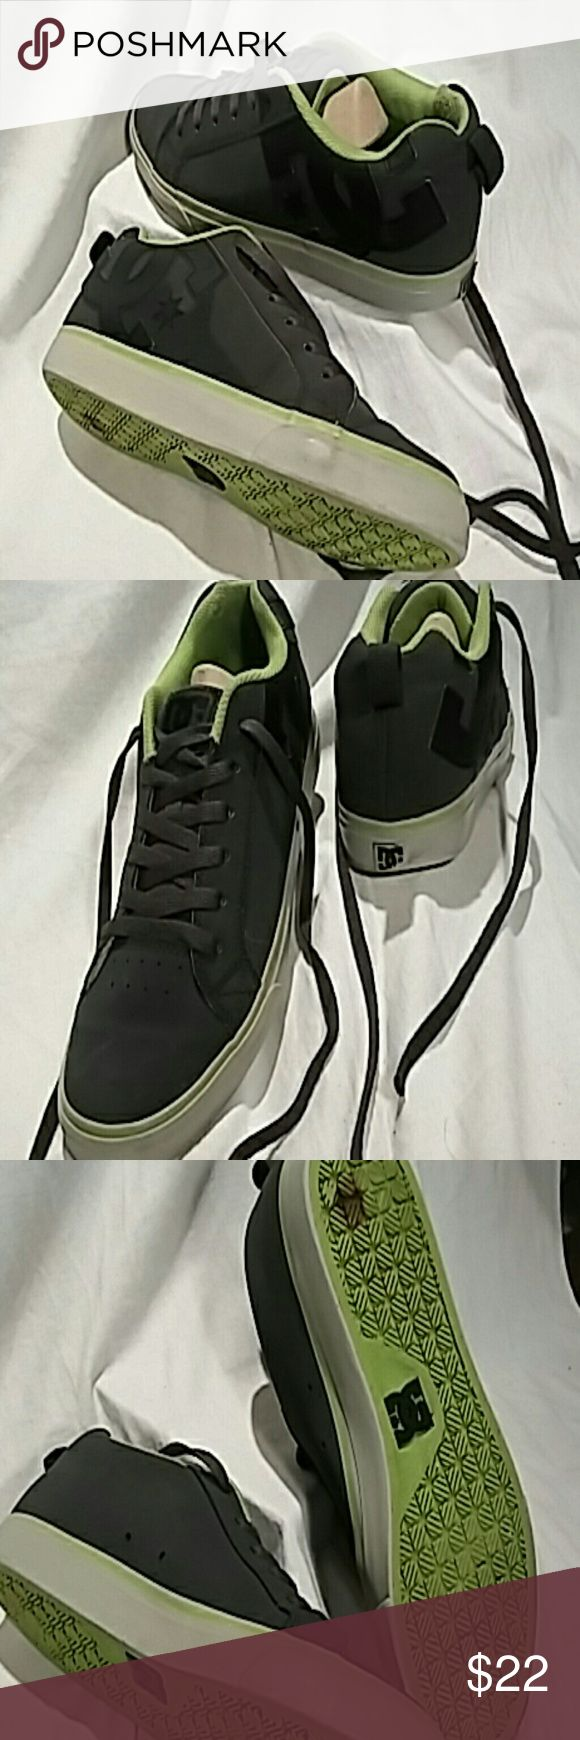 Mens Bedroom Slippers Made In Usa 17 Best Ideas About Dc Shoes Usa On Pinterest Dc Shoes Girls Dc